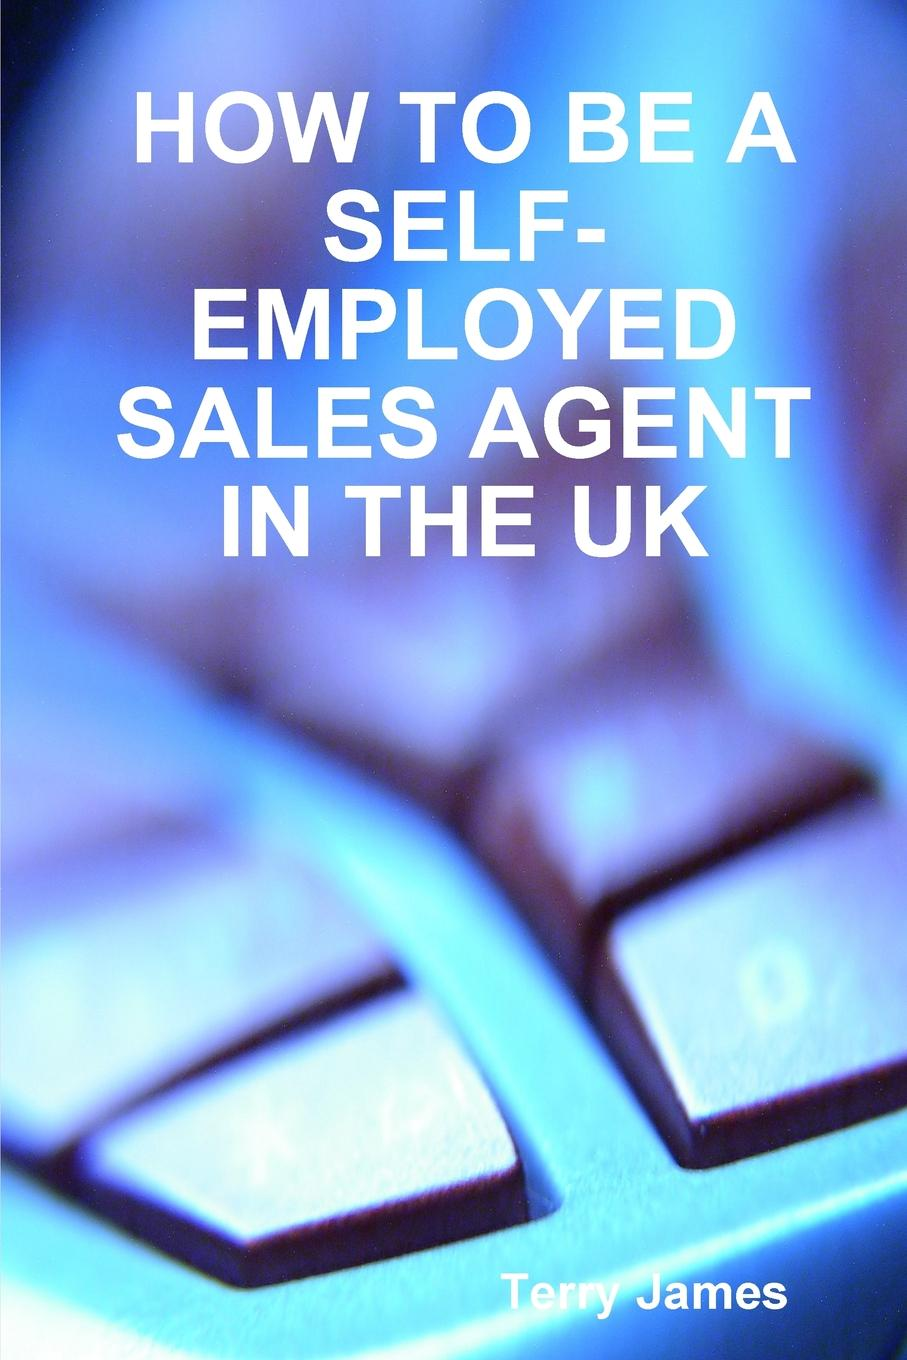 Terry James HOW TO BE A SELF-EMPLOYED SALES AGENT IN THE UK john morris gillette culture agencies of a typical manufacturing group south chicago